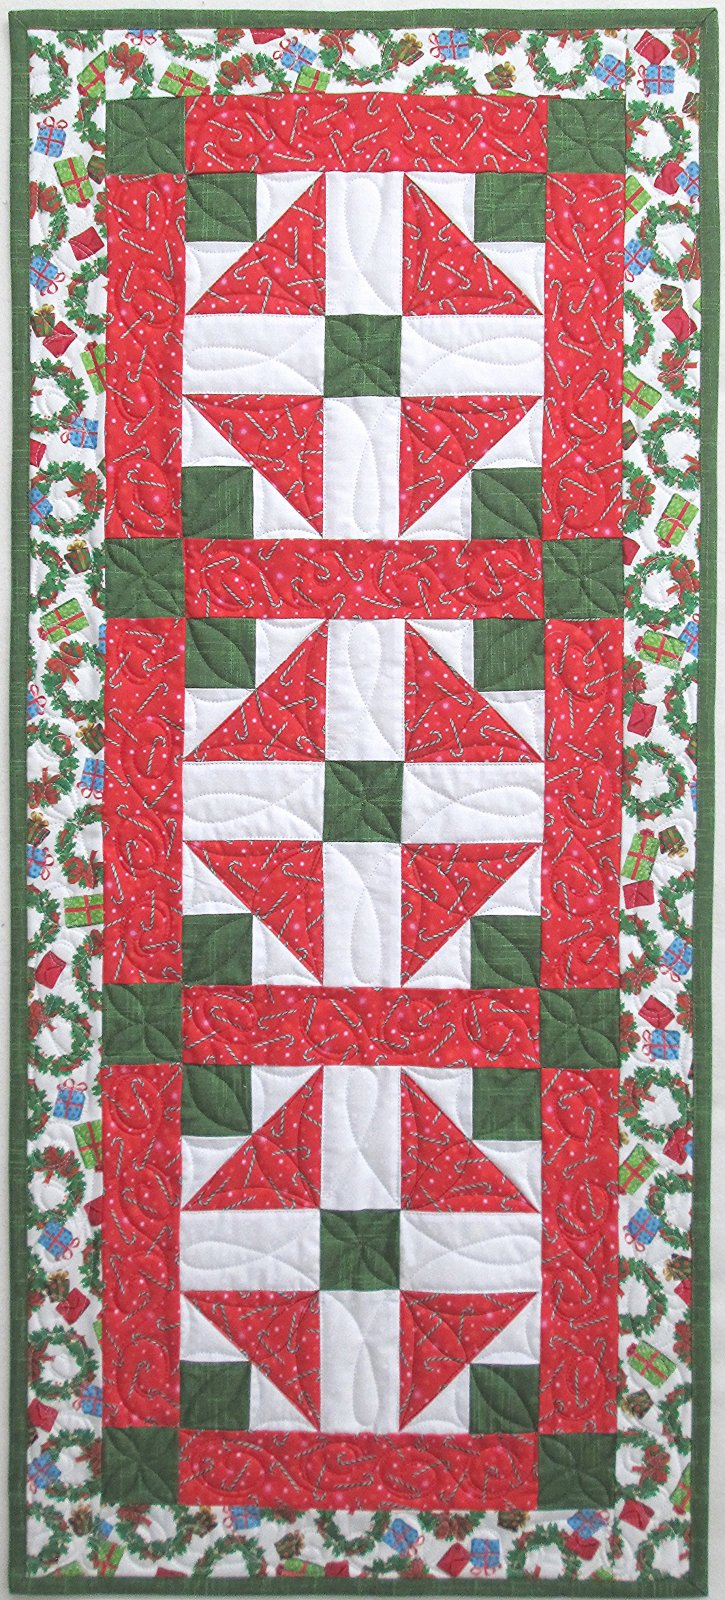 Frosty Friends Table Runner Kit (Cat's on the table pattern)